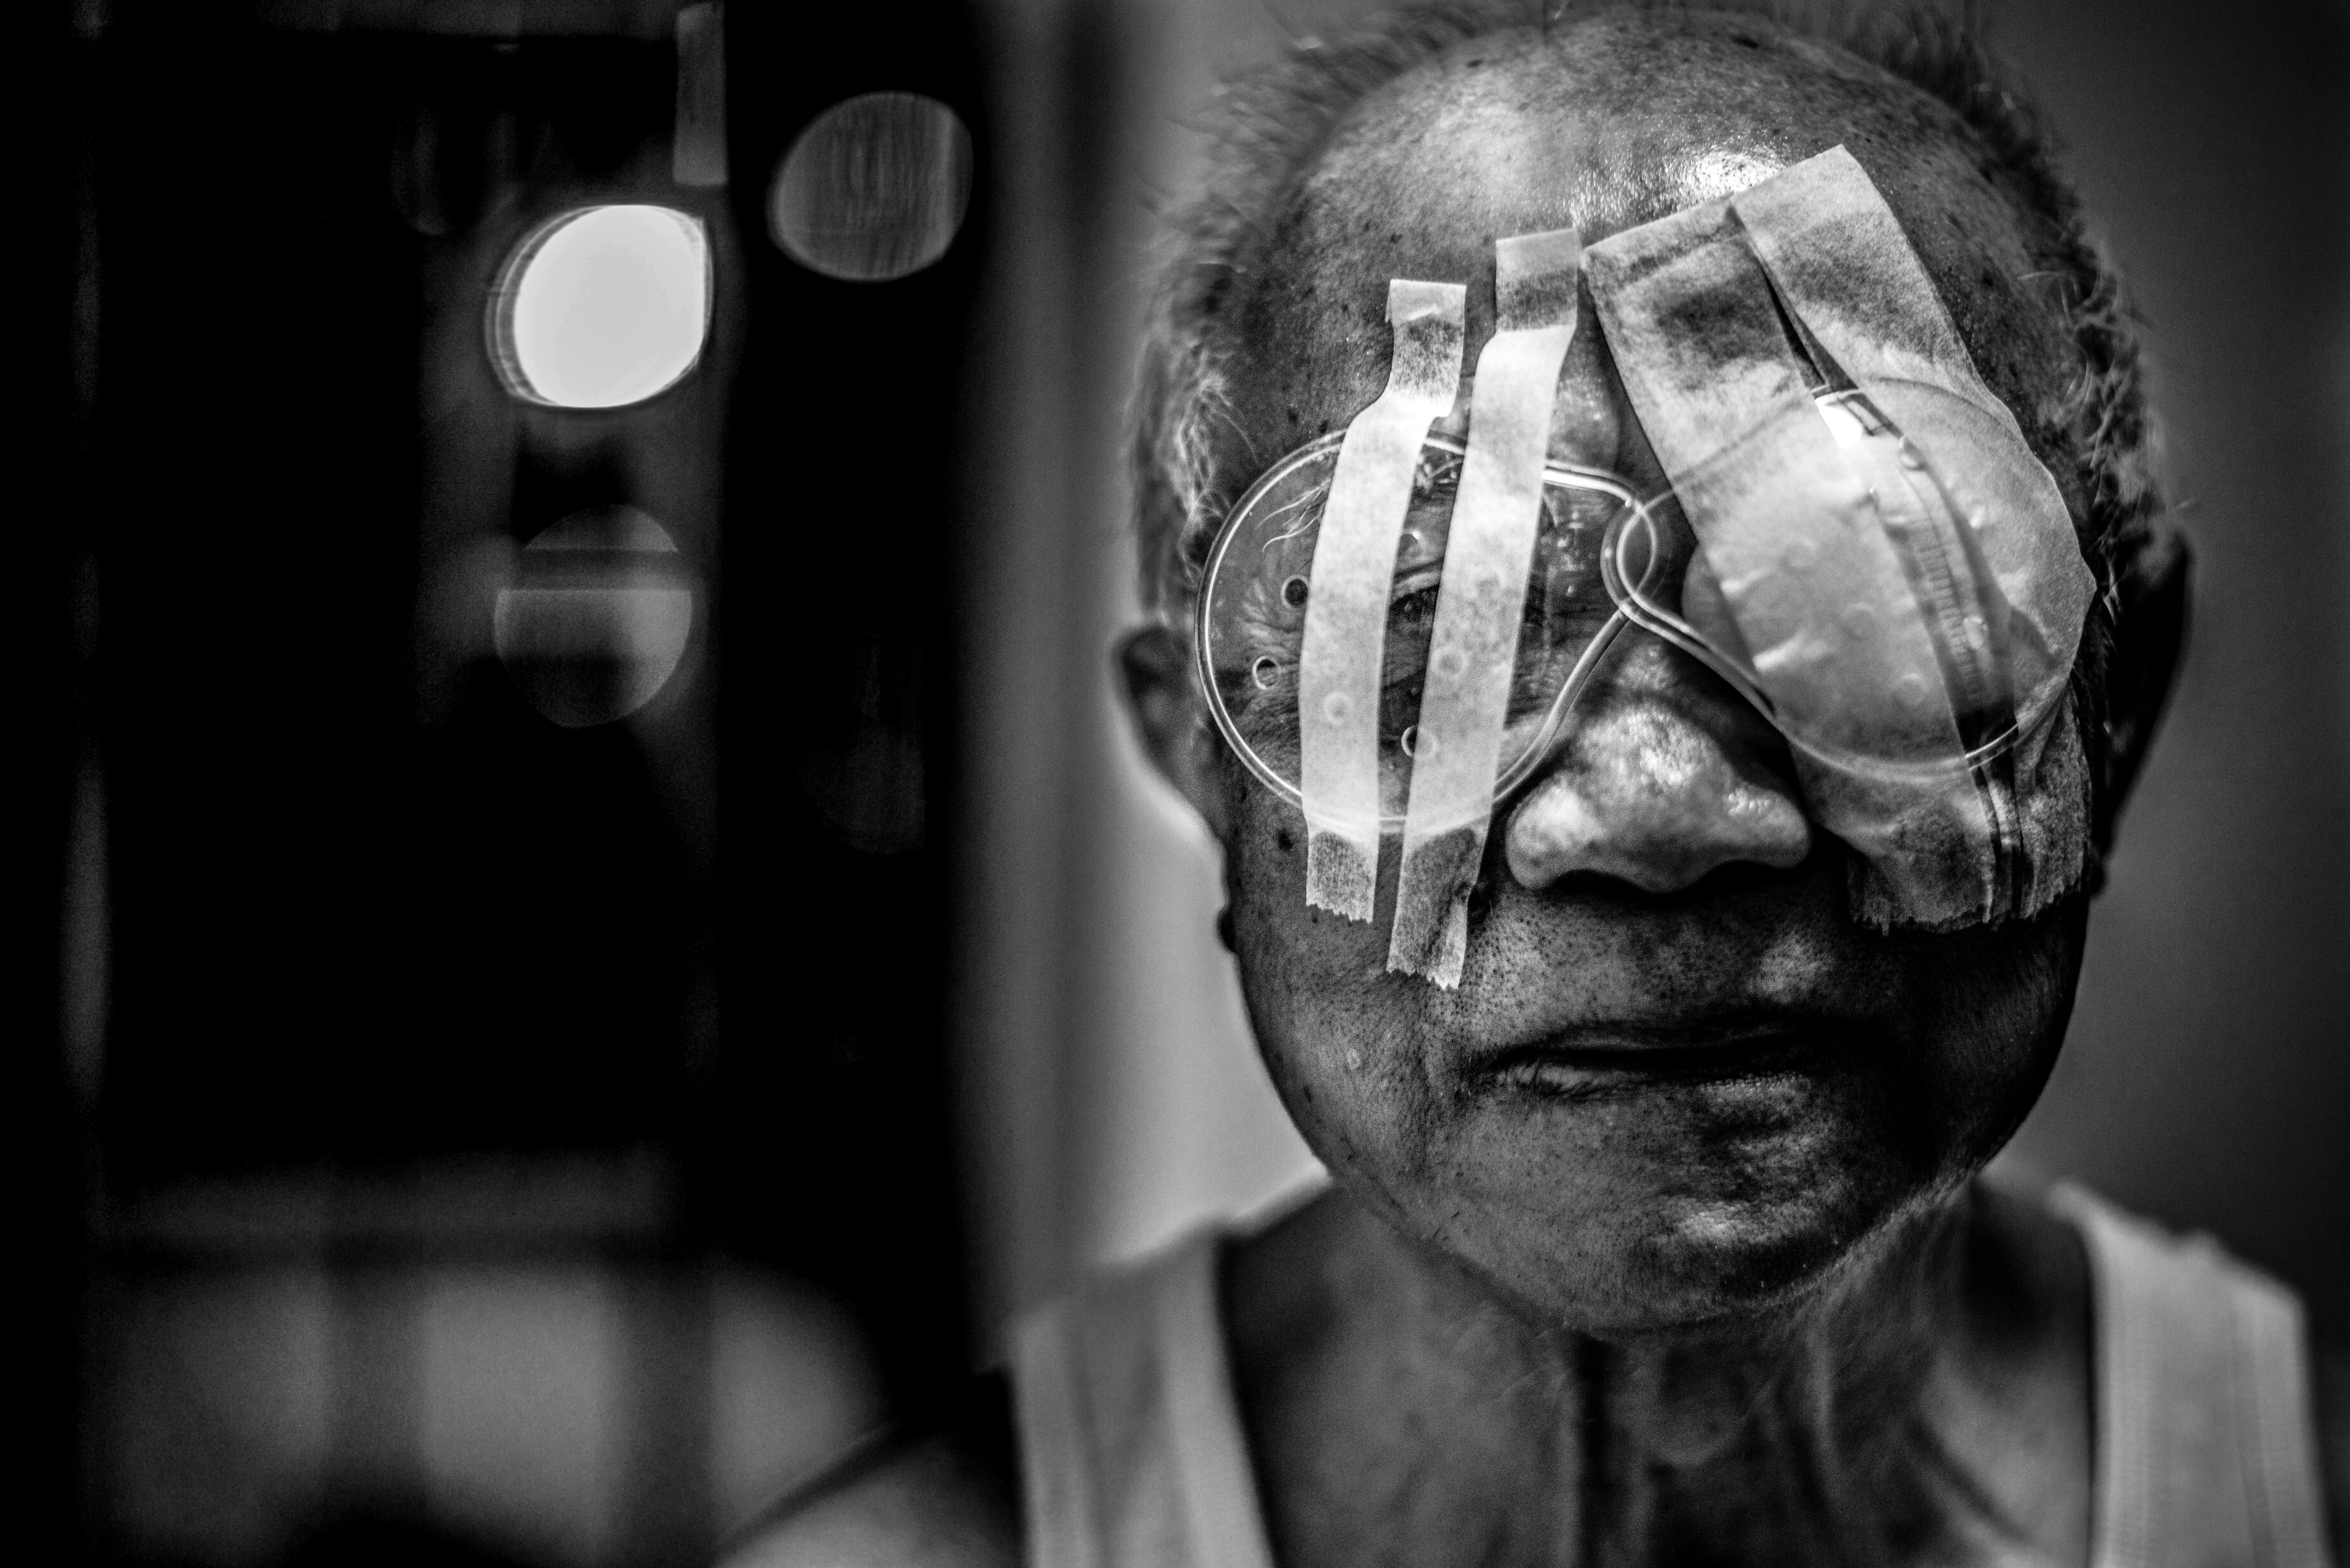 Image of: Face Shallow Focus Of Blind Man Photography Unsplash See With Your Heart Photo By Carl Cheng visualasone On Unsplash